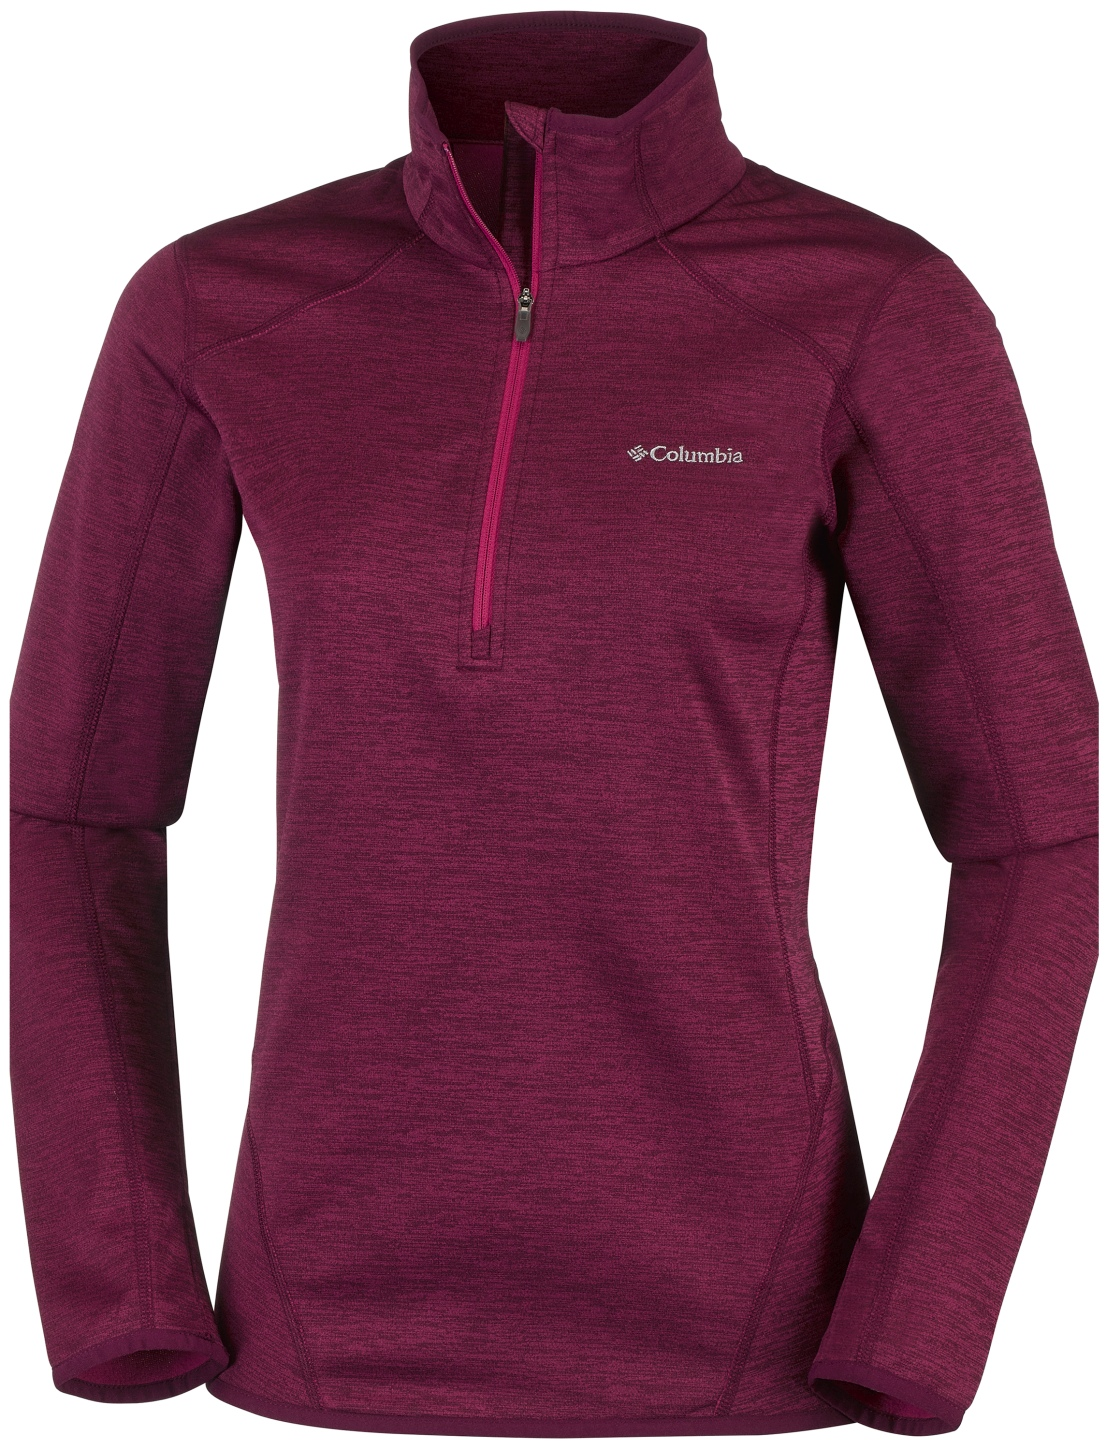 Columbia Women's Sapphire Trail Half Zip Fleece Red Orchid-30